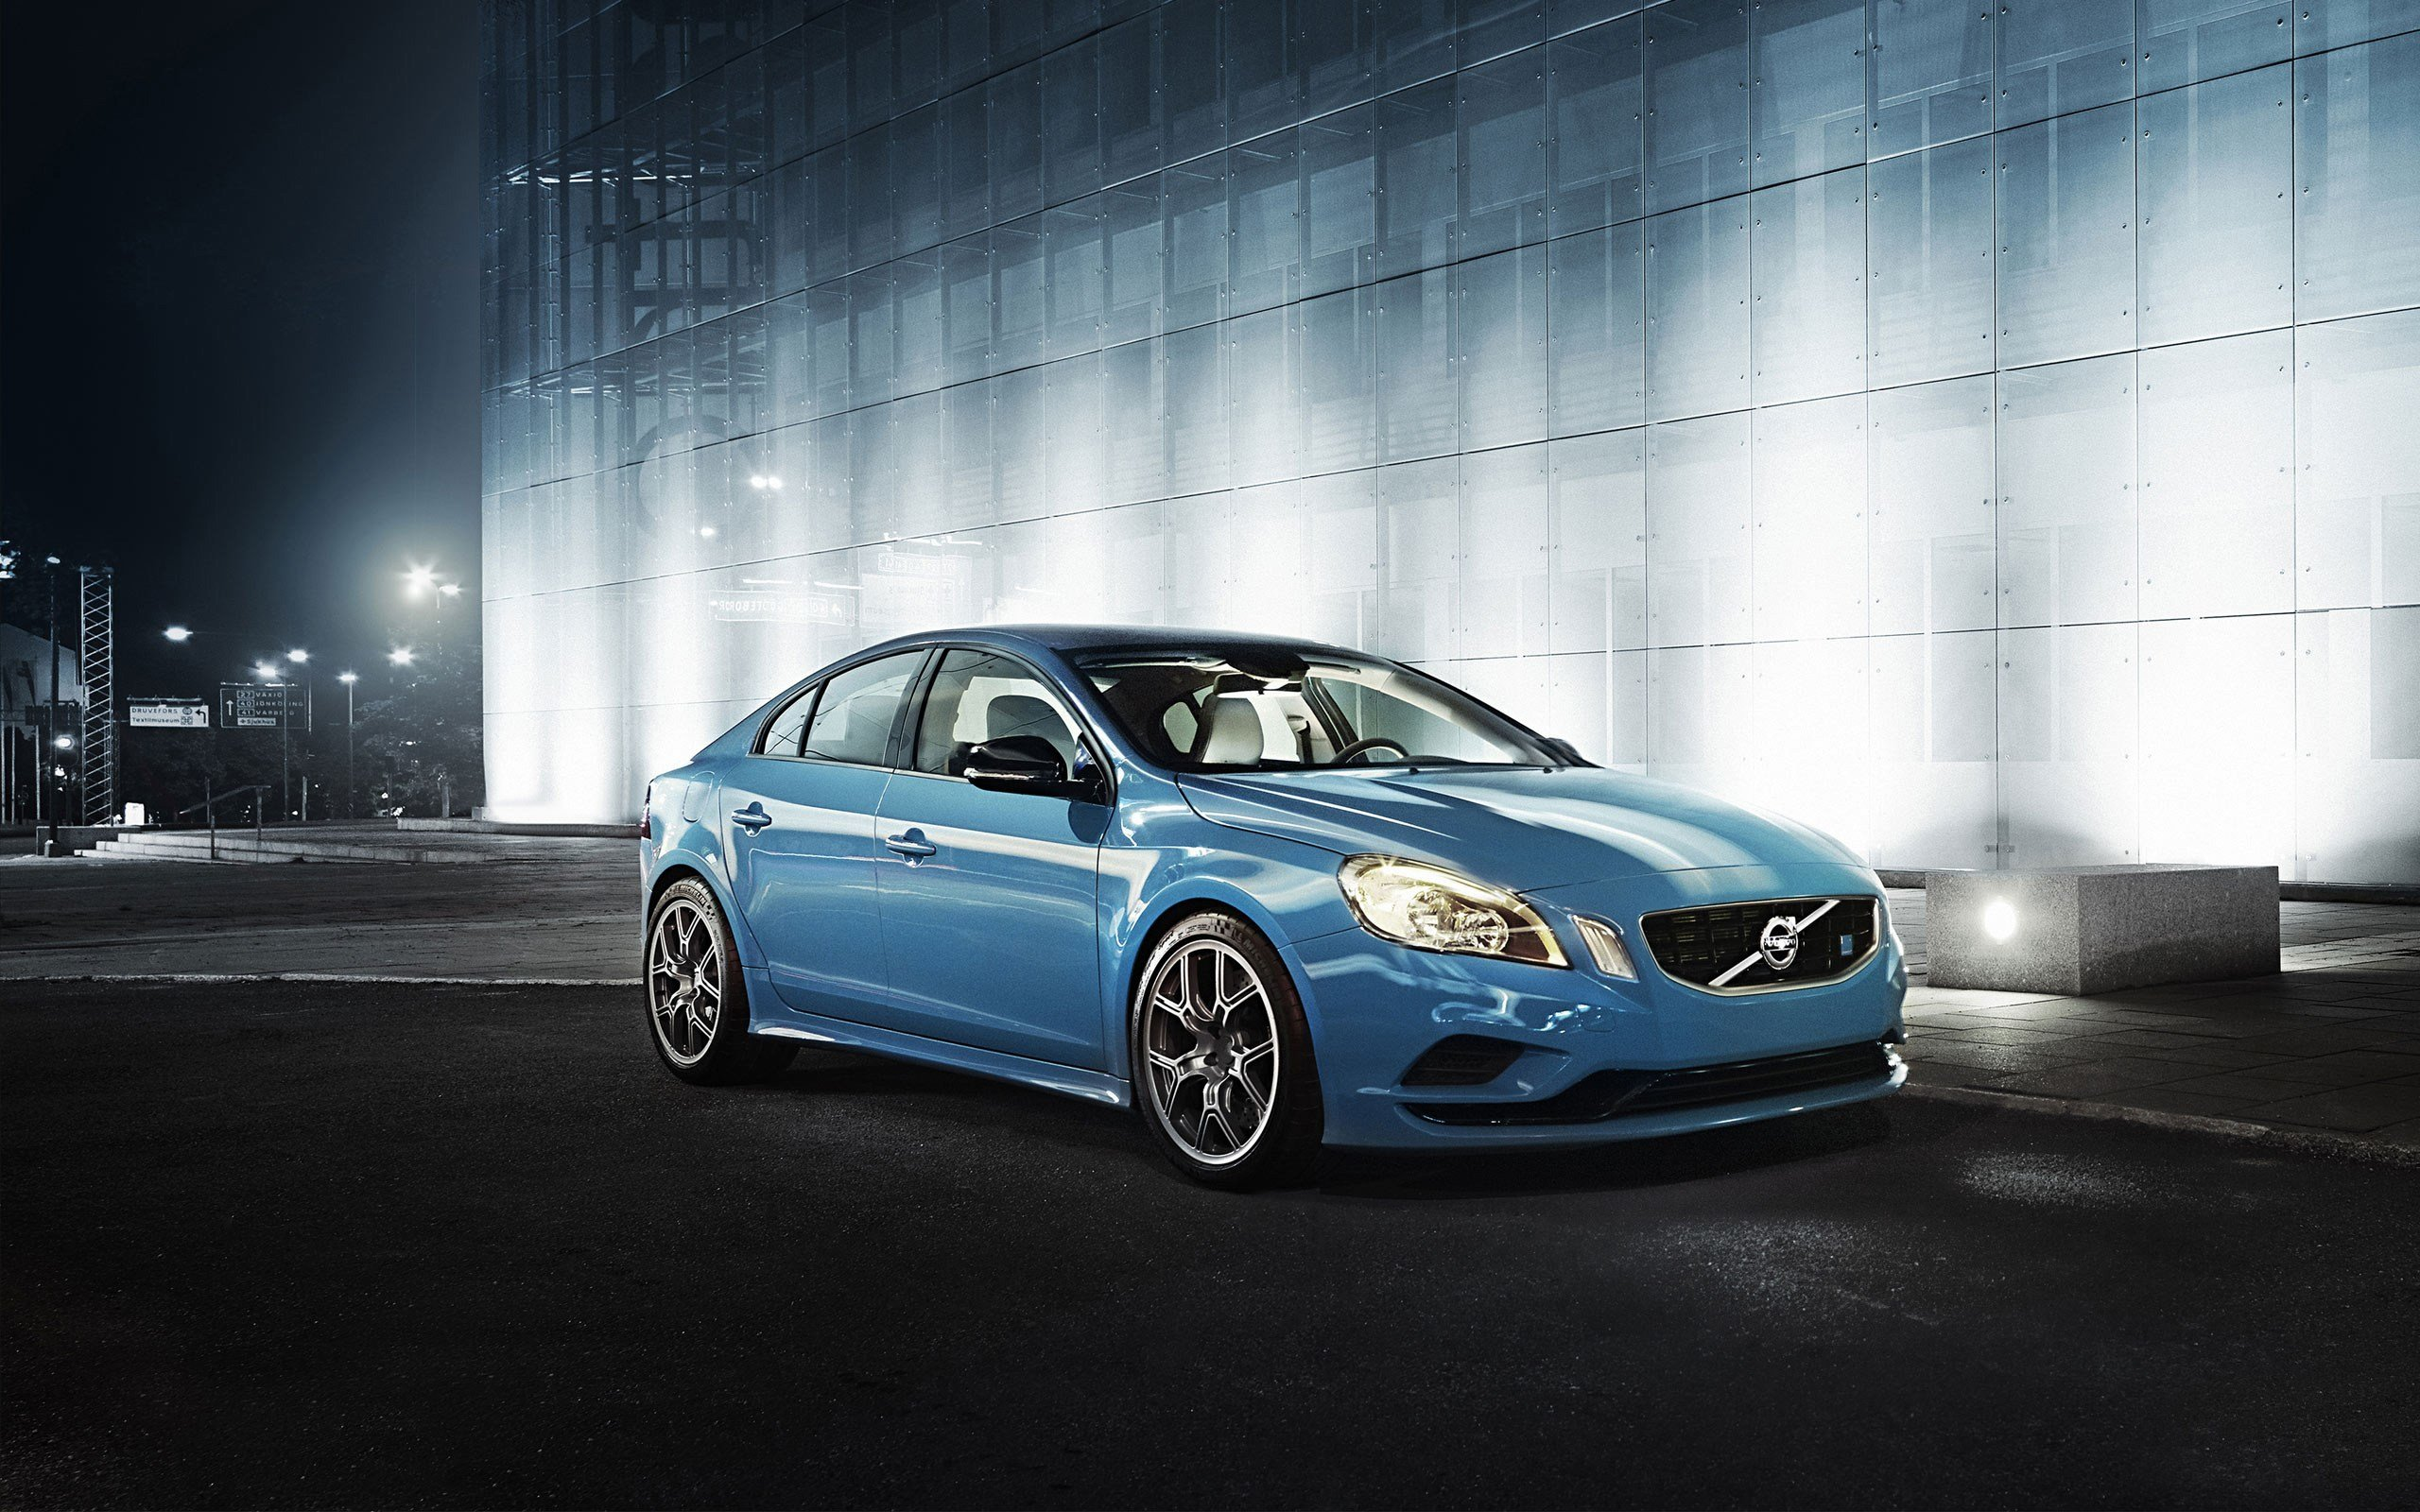 New 2012 Volvo S60 Polestar Wallpaper Hd Car Wallpapers Id On This Month